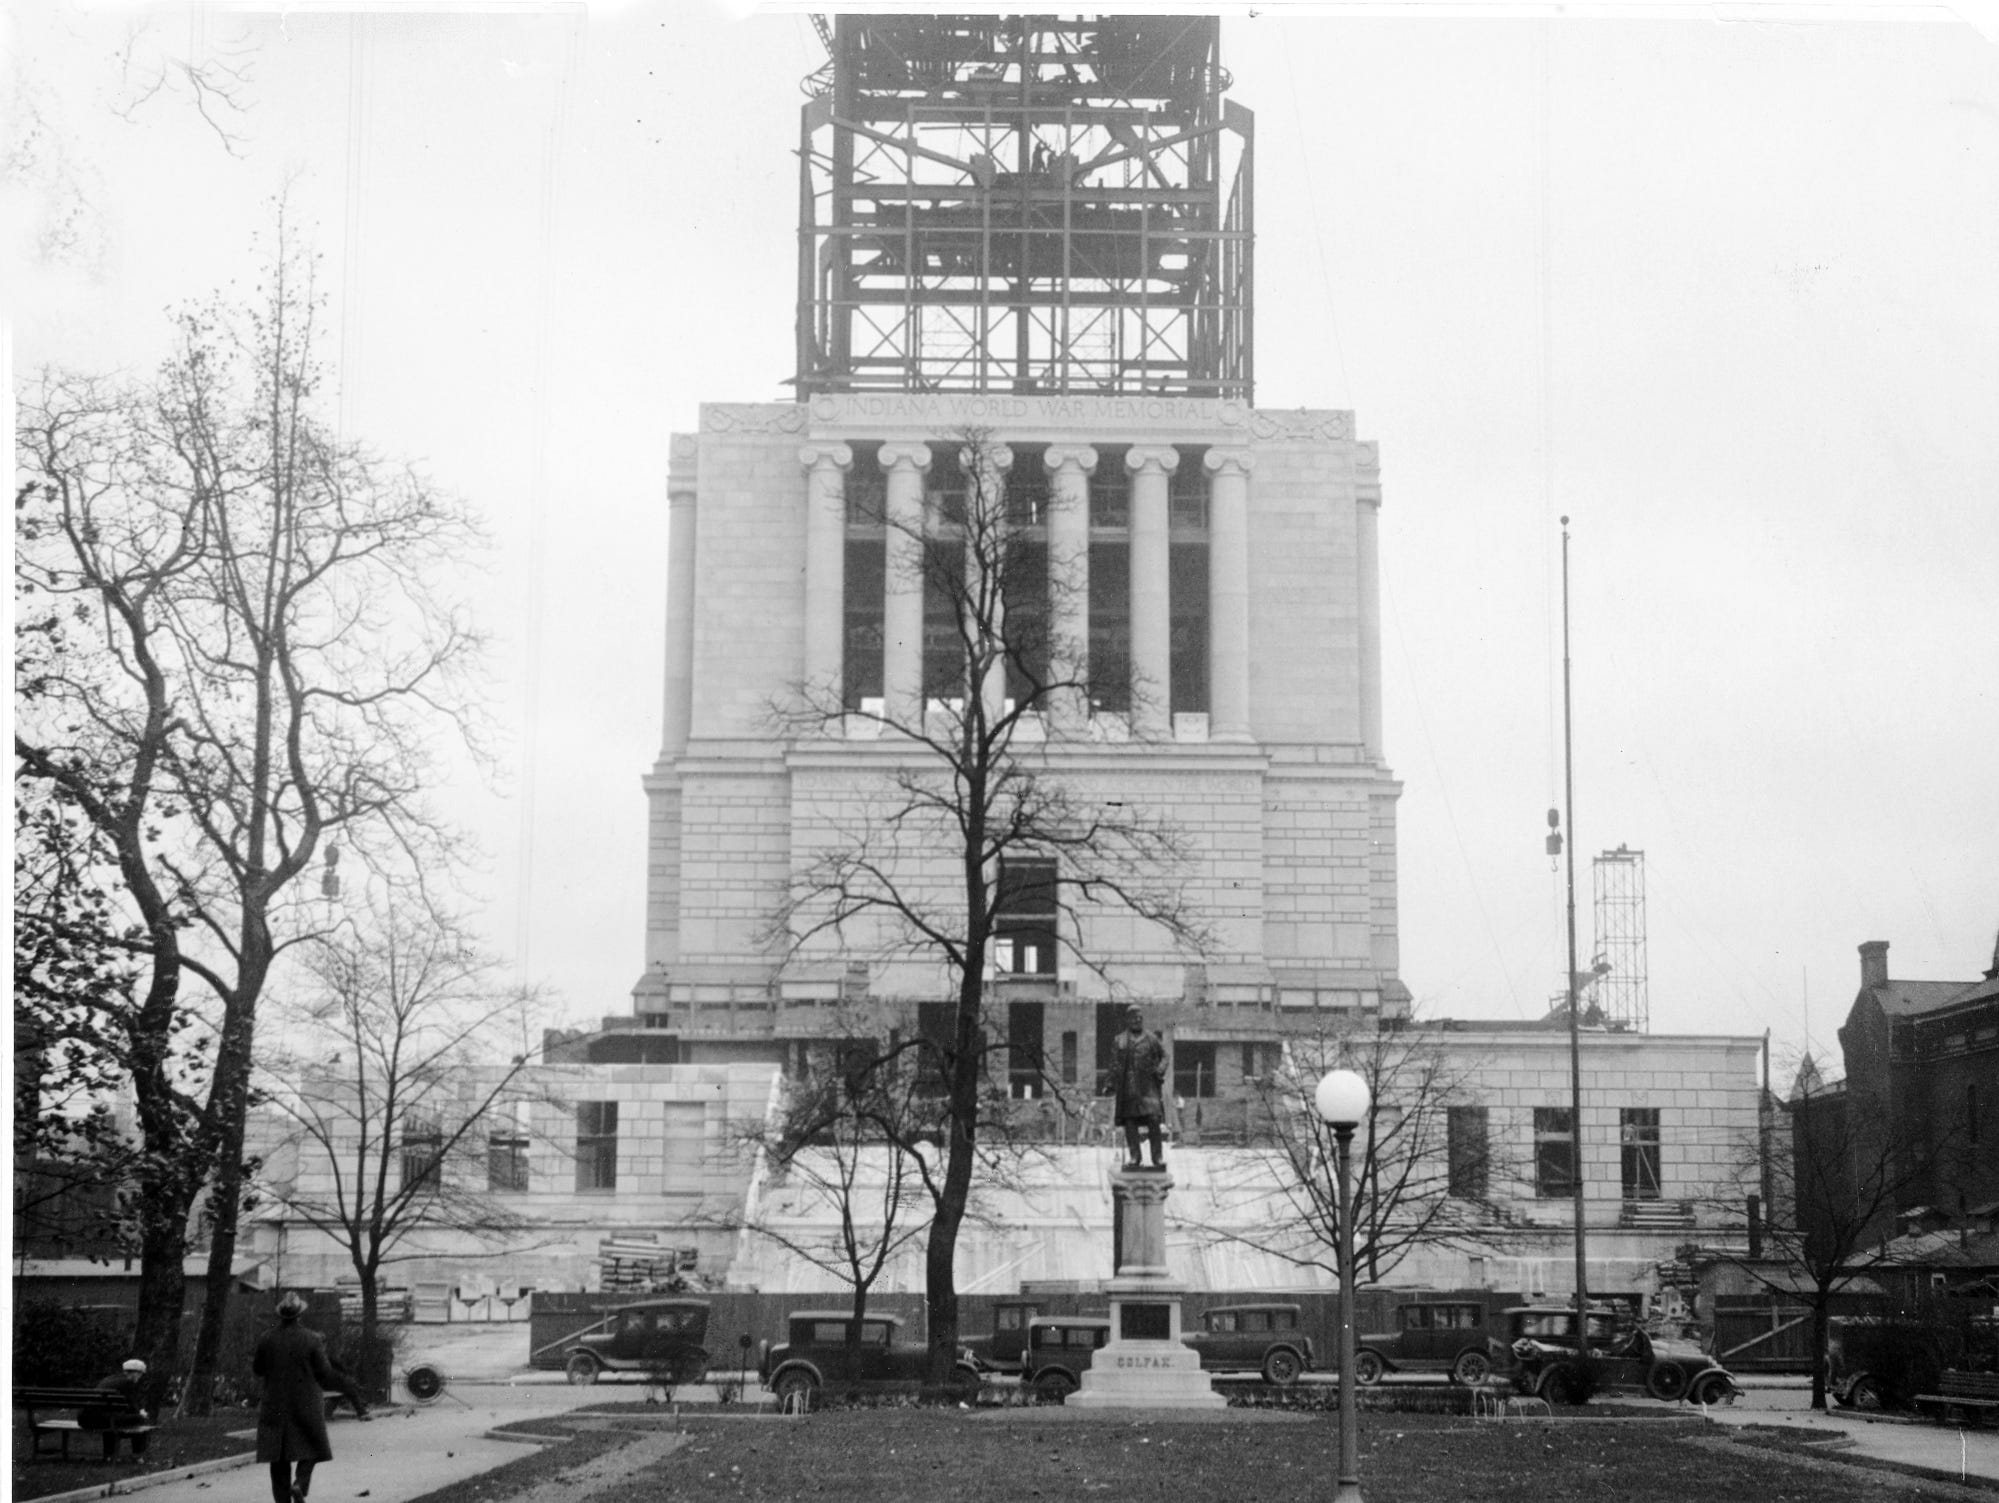 Indiana World War Memorial construction from University Park in 1920's.